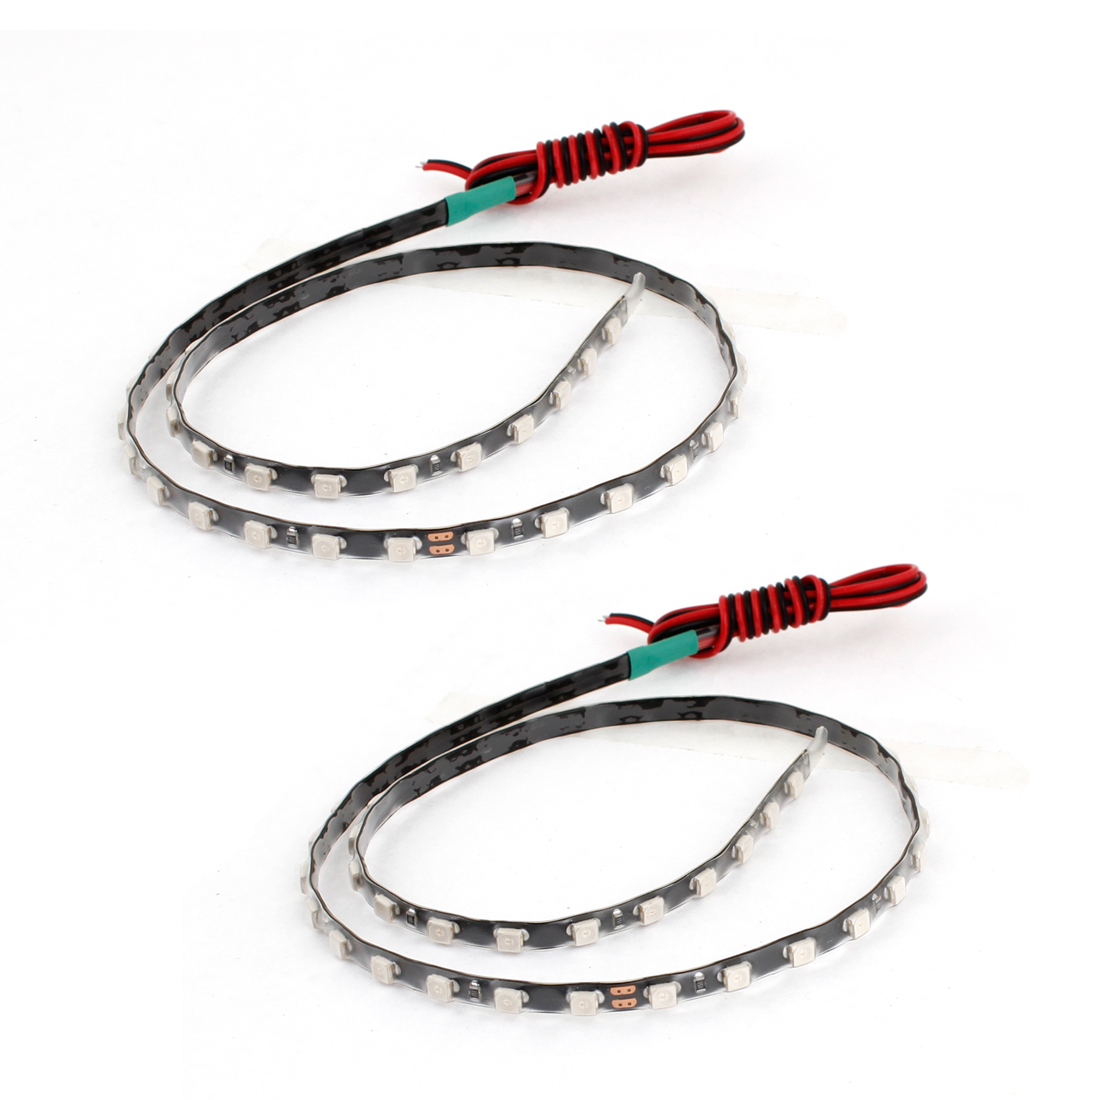 2PCS Car Interior Green 1210 SMD 45 LED Flexible Strip Light Lamp 45CM Long